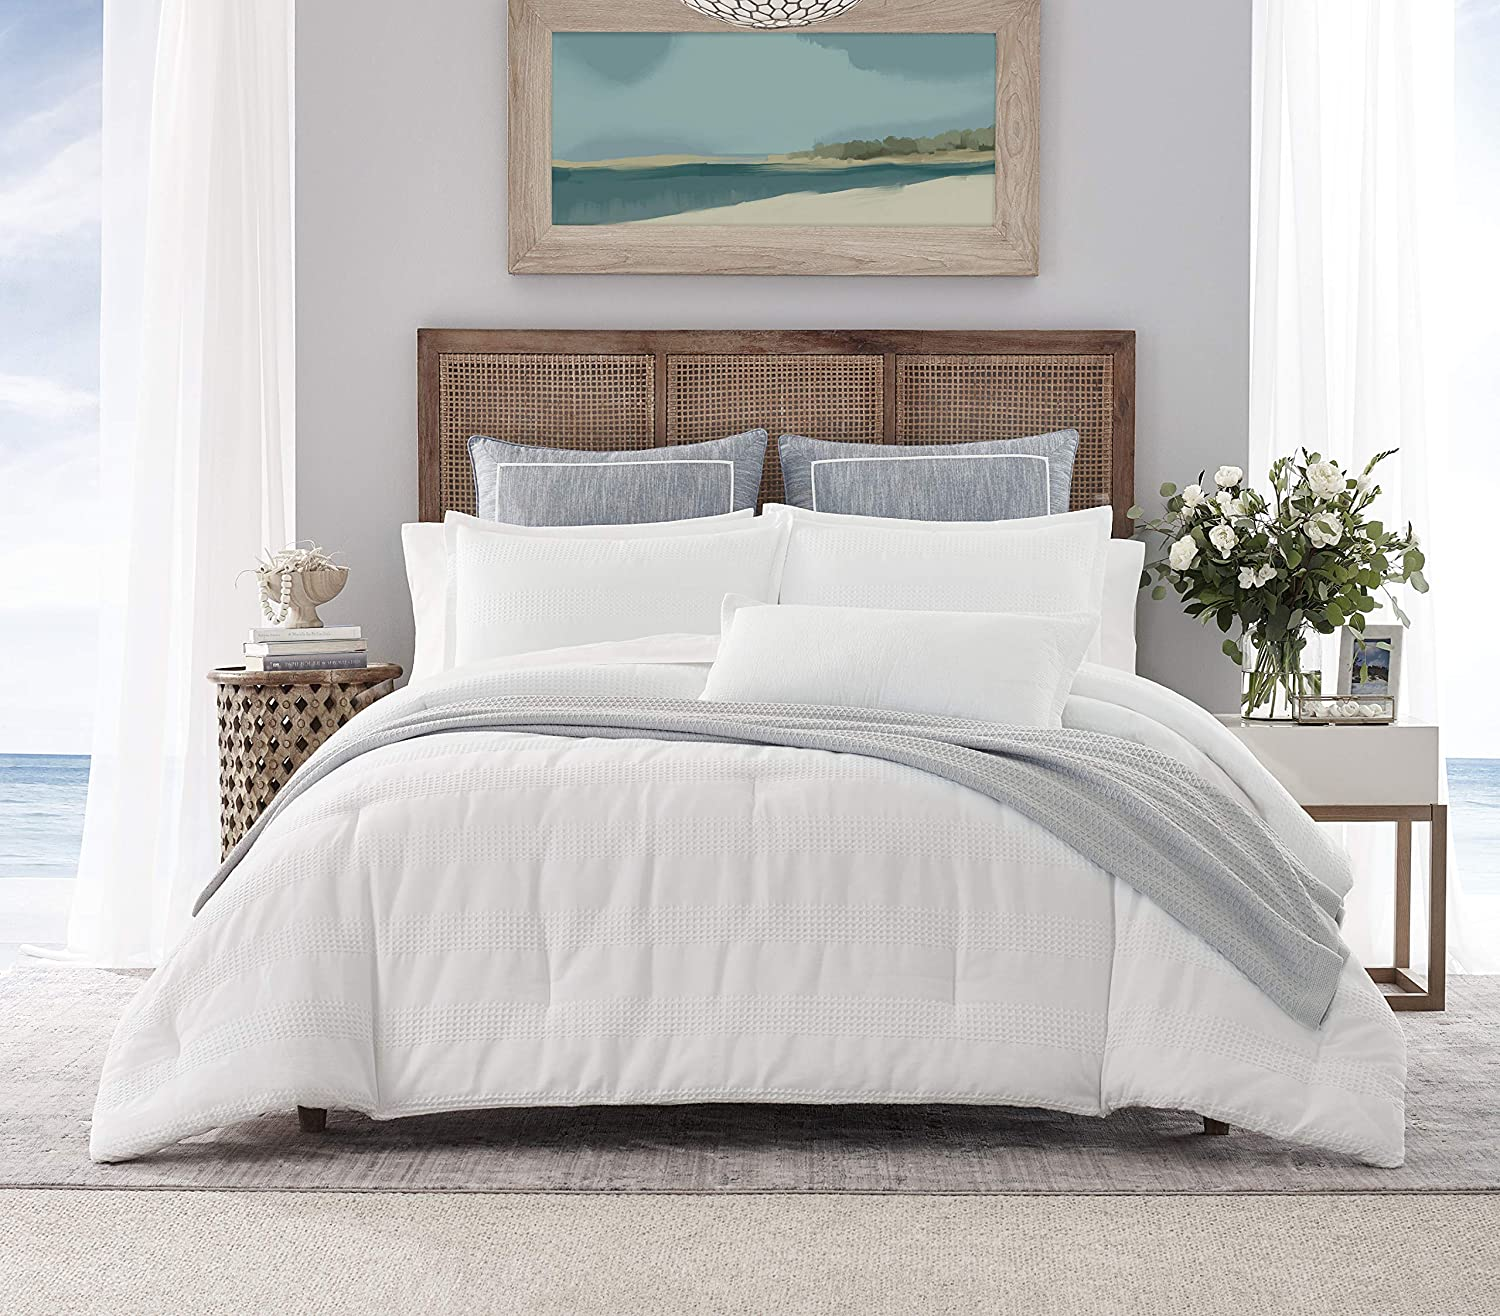 Nautica | Hampton Collection | Cozy & Breathable Cotton Blend Waffle Weave Texture Reversible Comforter Matching Shams, 3-Piece Bedding Set, King, White